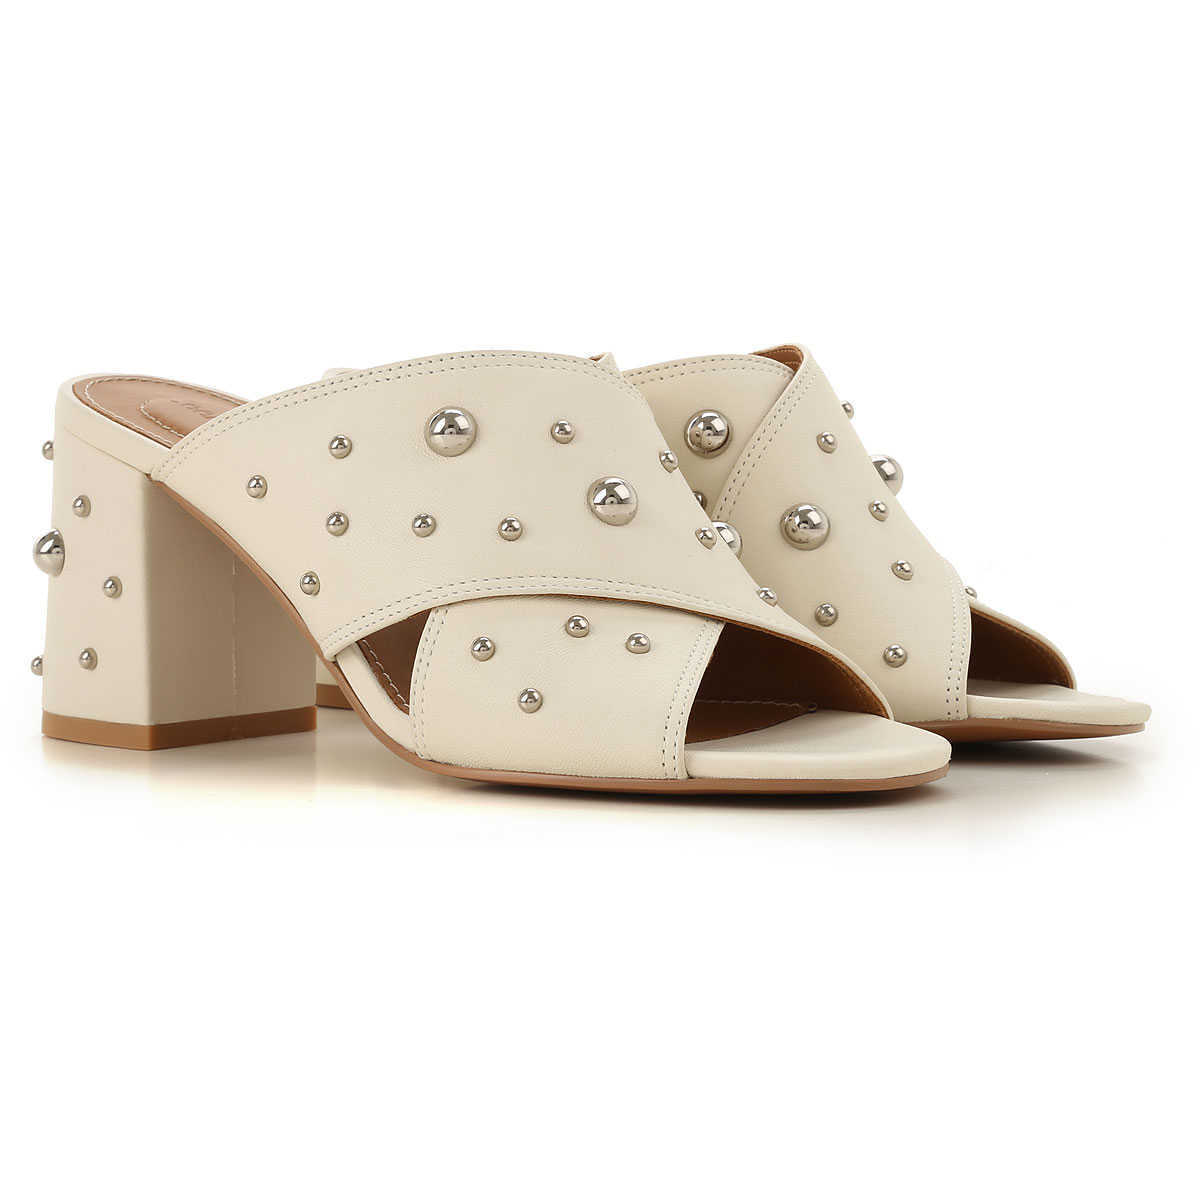 Netherlands Womens House Shoes Looks Trends Style - Womens HOUSE SHOES